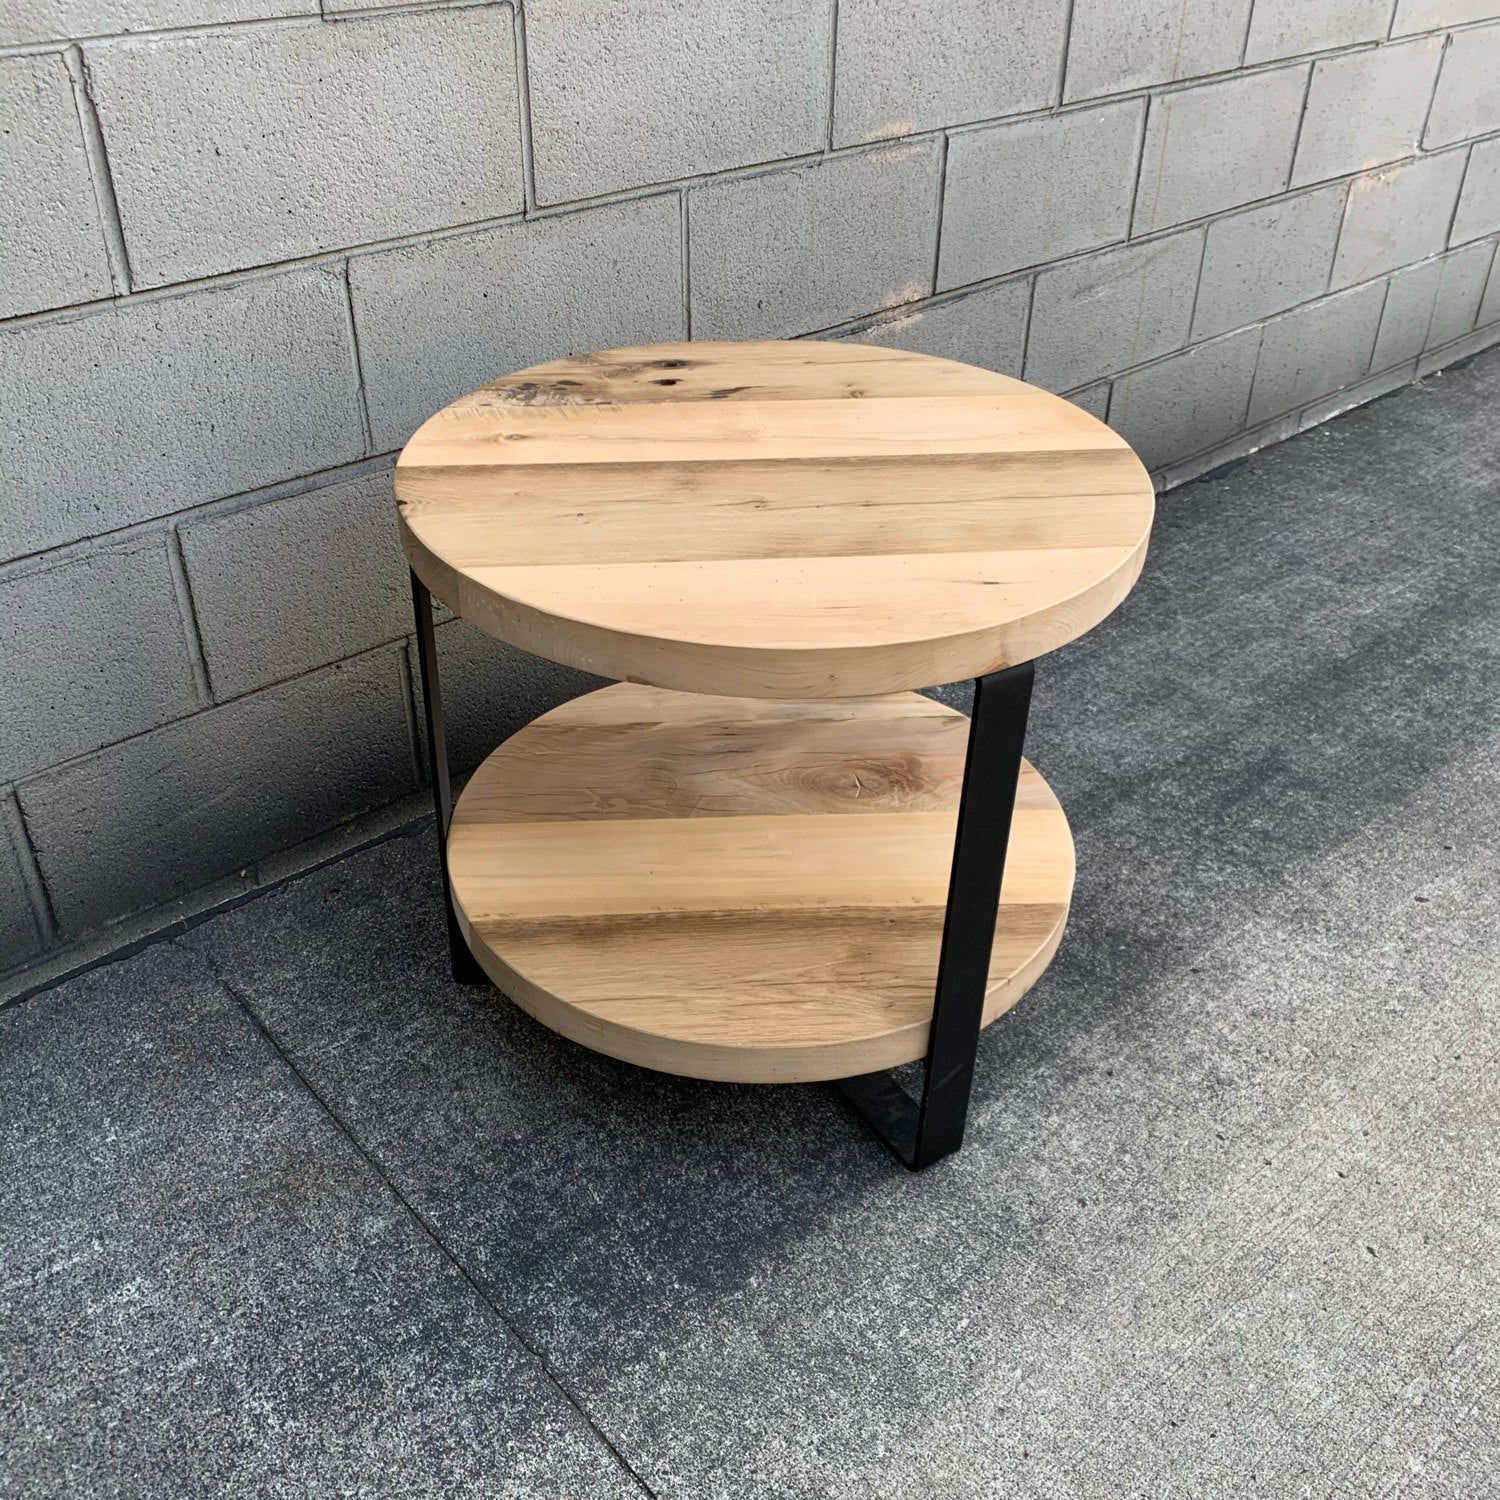 Barnwood Round End Table Coffee Table Night Stand Side Table Etsy Reclaimed Barn Wood Wood Sofa Barn Wood [ 1500 x 1500 Pixel ]